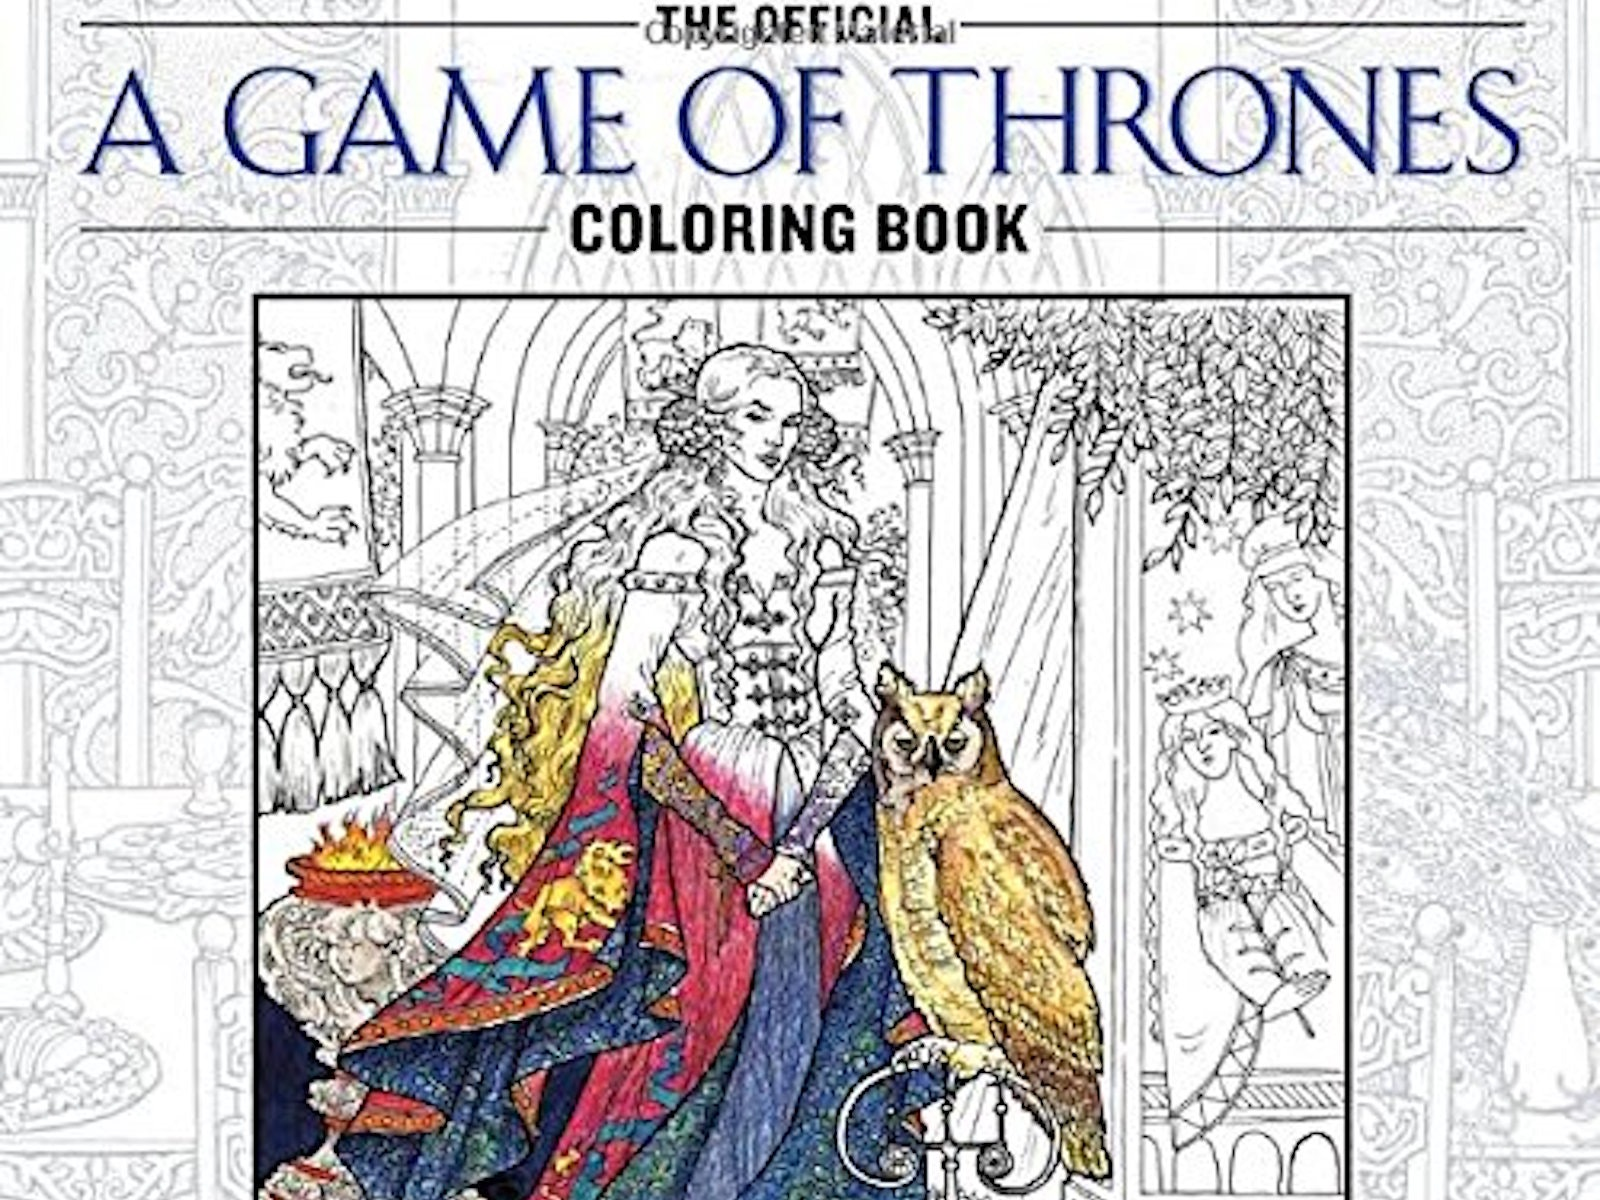 The most murderous and incestuouscoloring book, ever🖍️